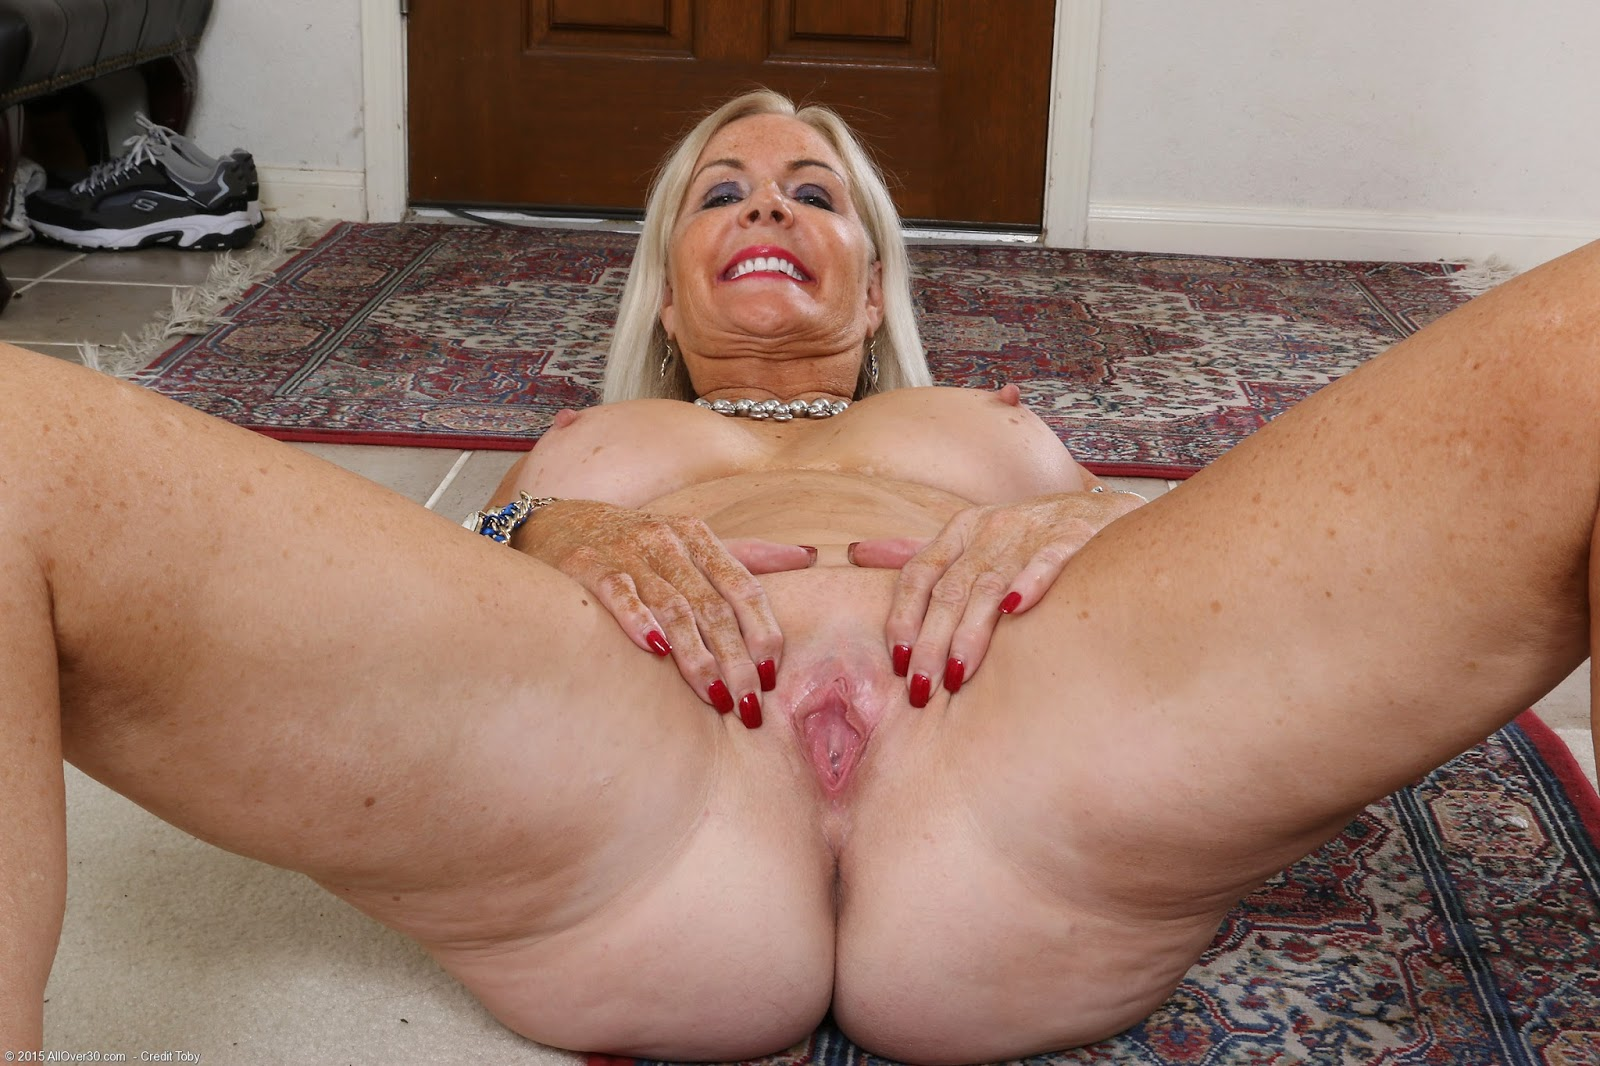 Mature creampie sabrina 48 y - 3 part 7